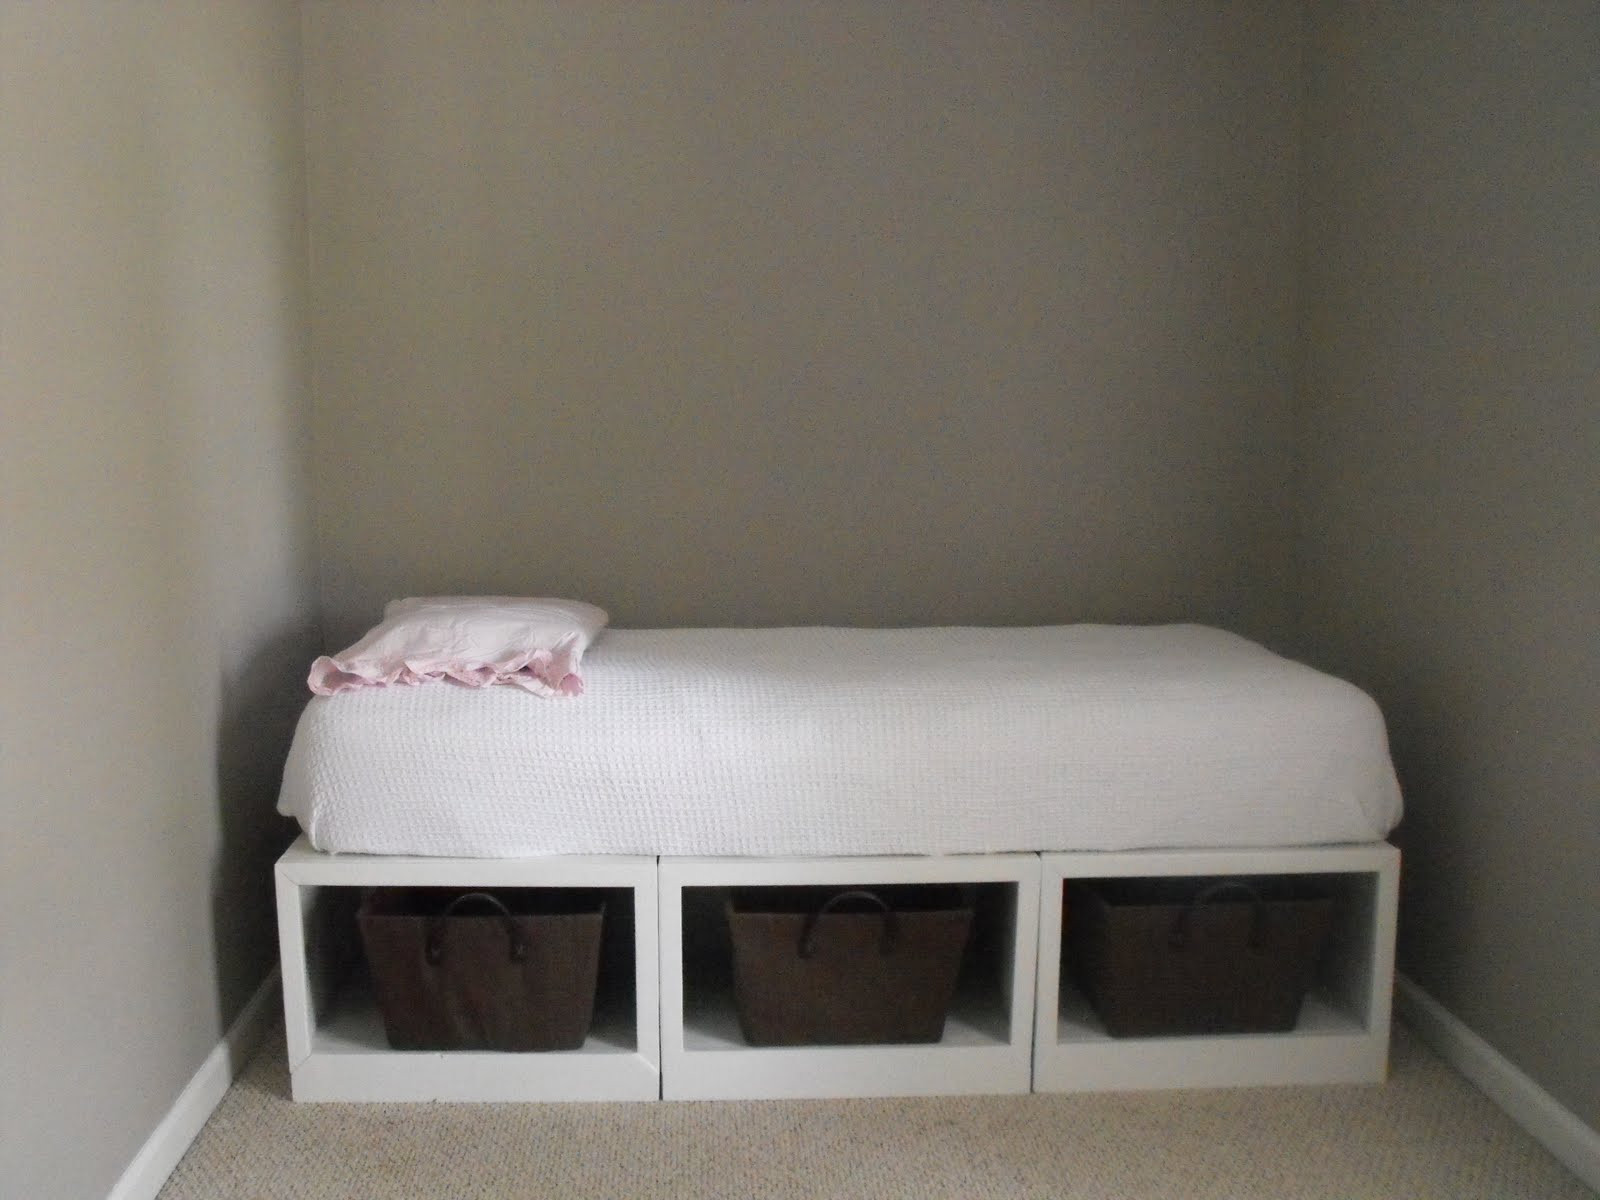 Best ideas about Storage Beds DIY . Save or Pin Susie Harris DIY storage daybed Now.